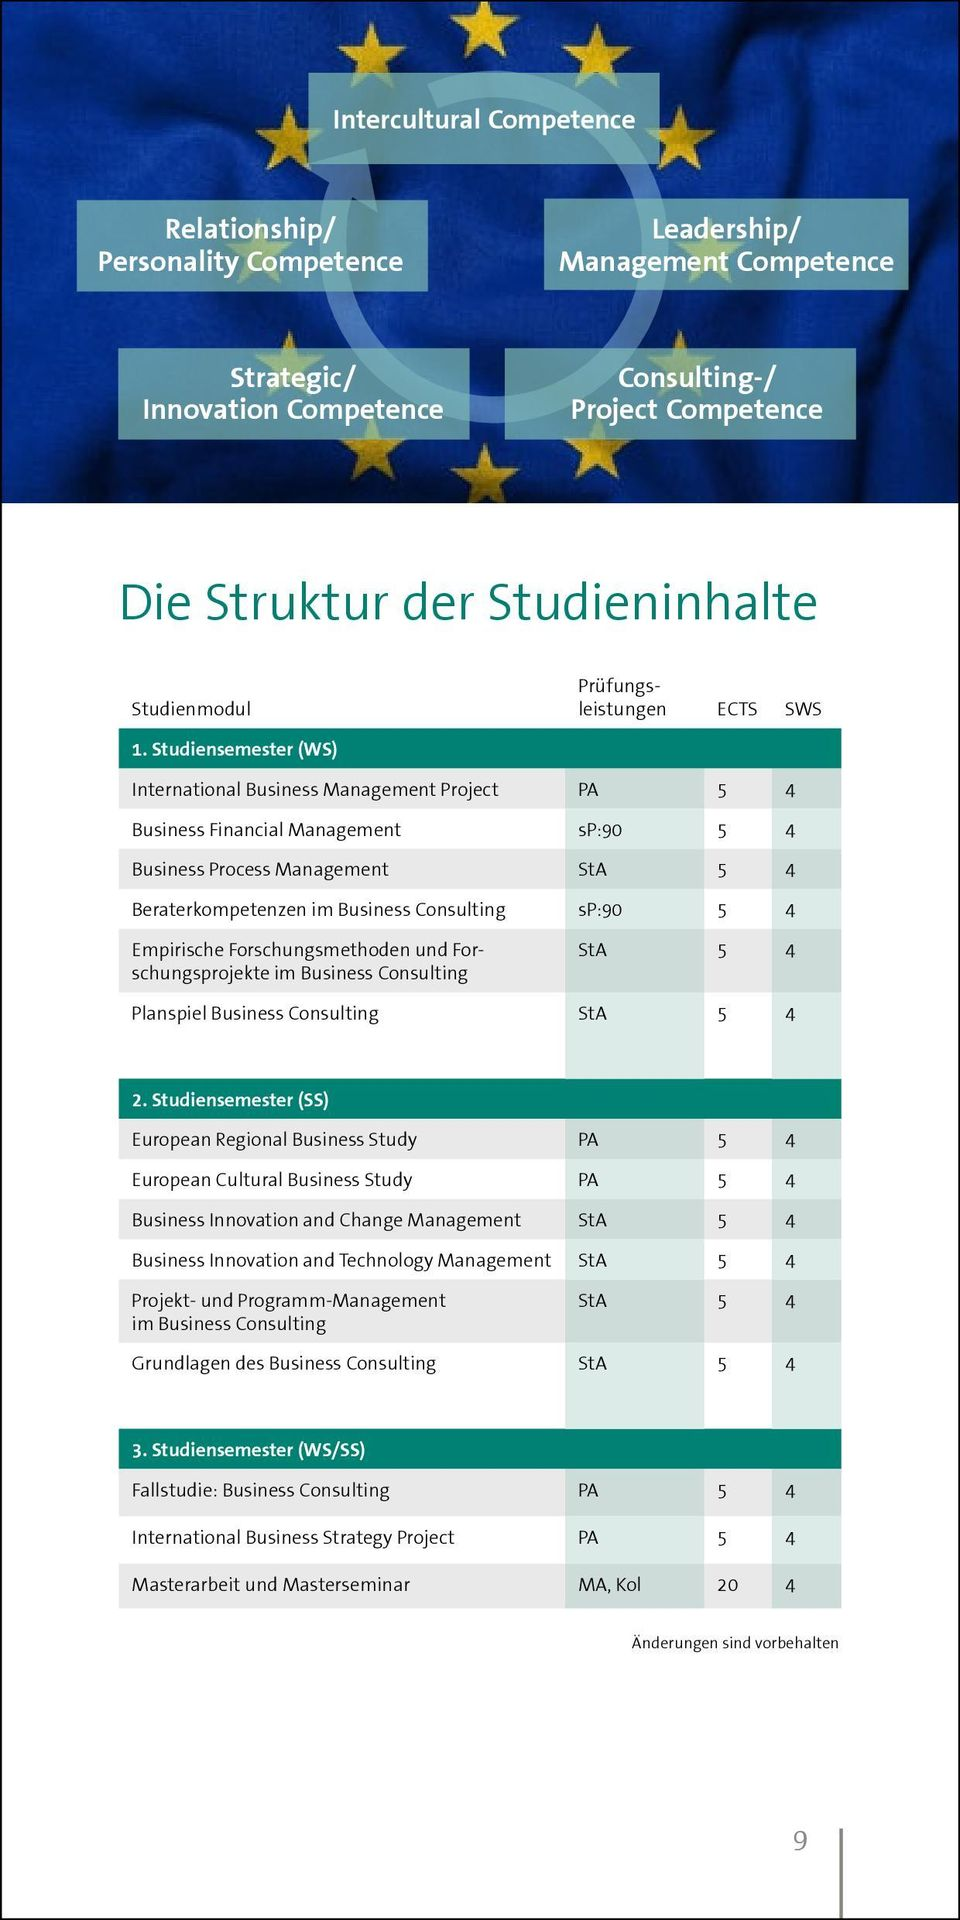 Studiensemester (WS) International Business Management Project PA 5 4 Business Financial Management sp:90 5 4 Business Process Management StA 5 4 Beraterkompetenzen im Business Consulting sp:90 5 4